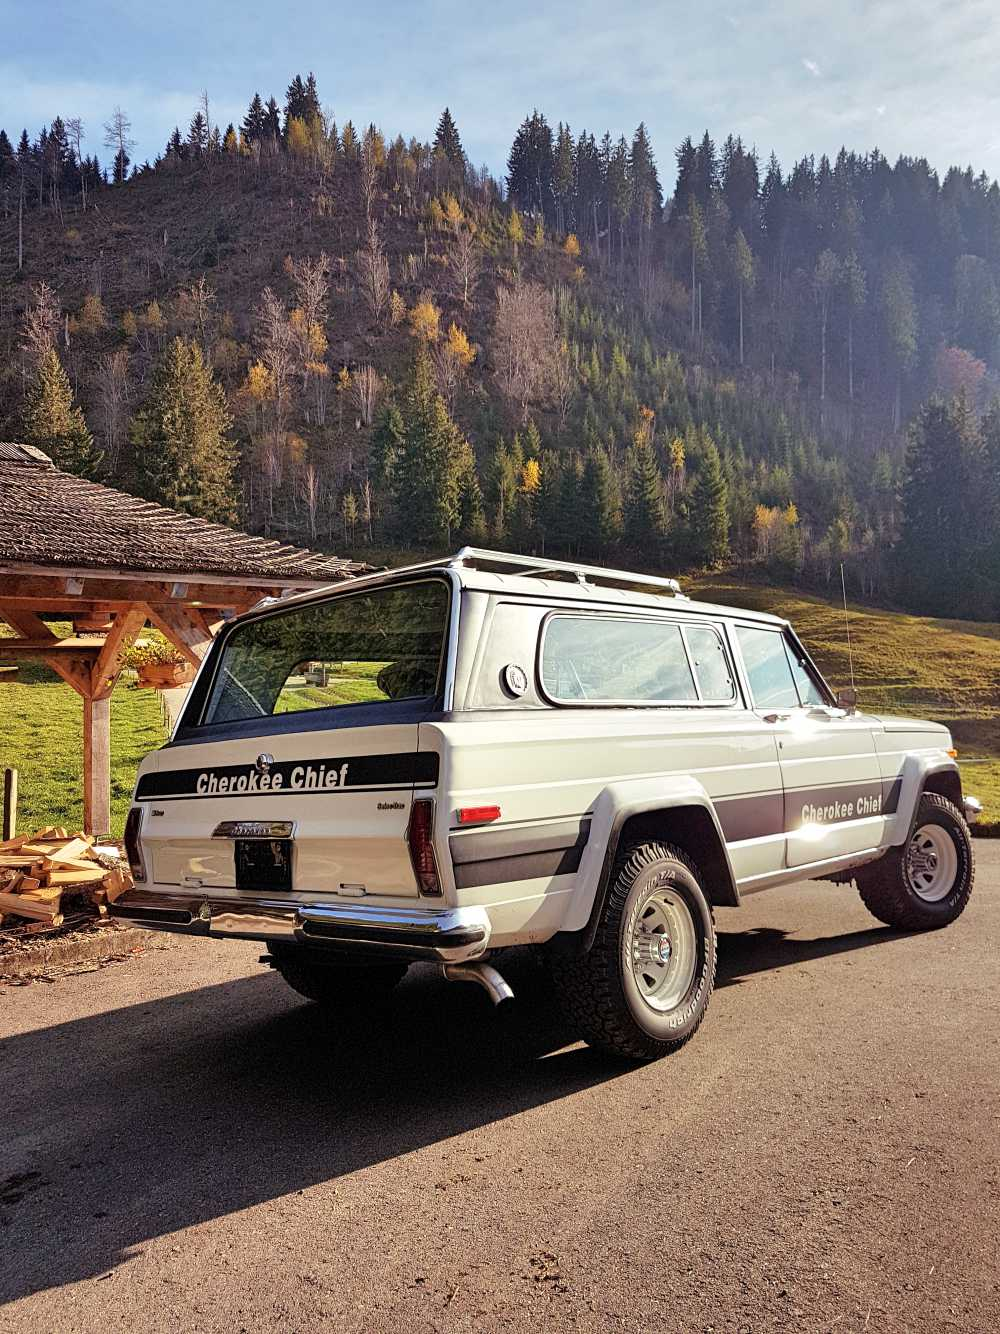 jeep-cherokee-chief-1978-shooting-moleson-64